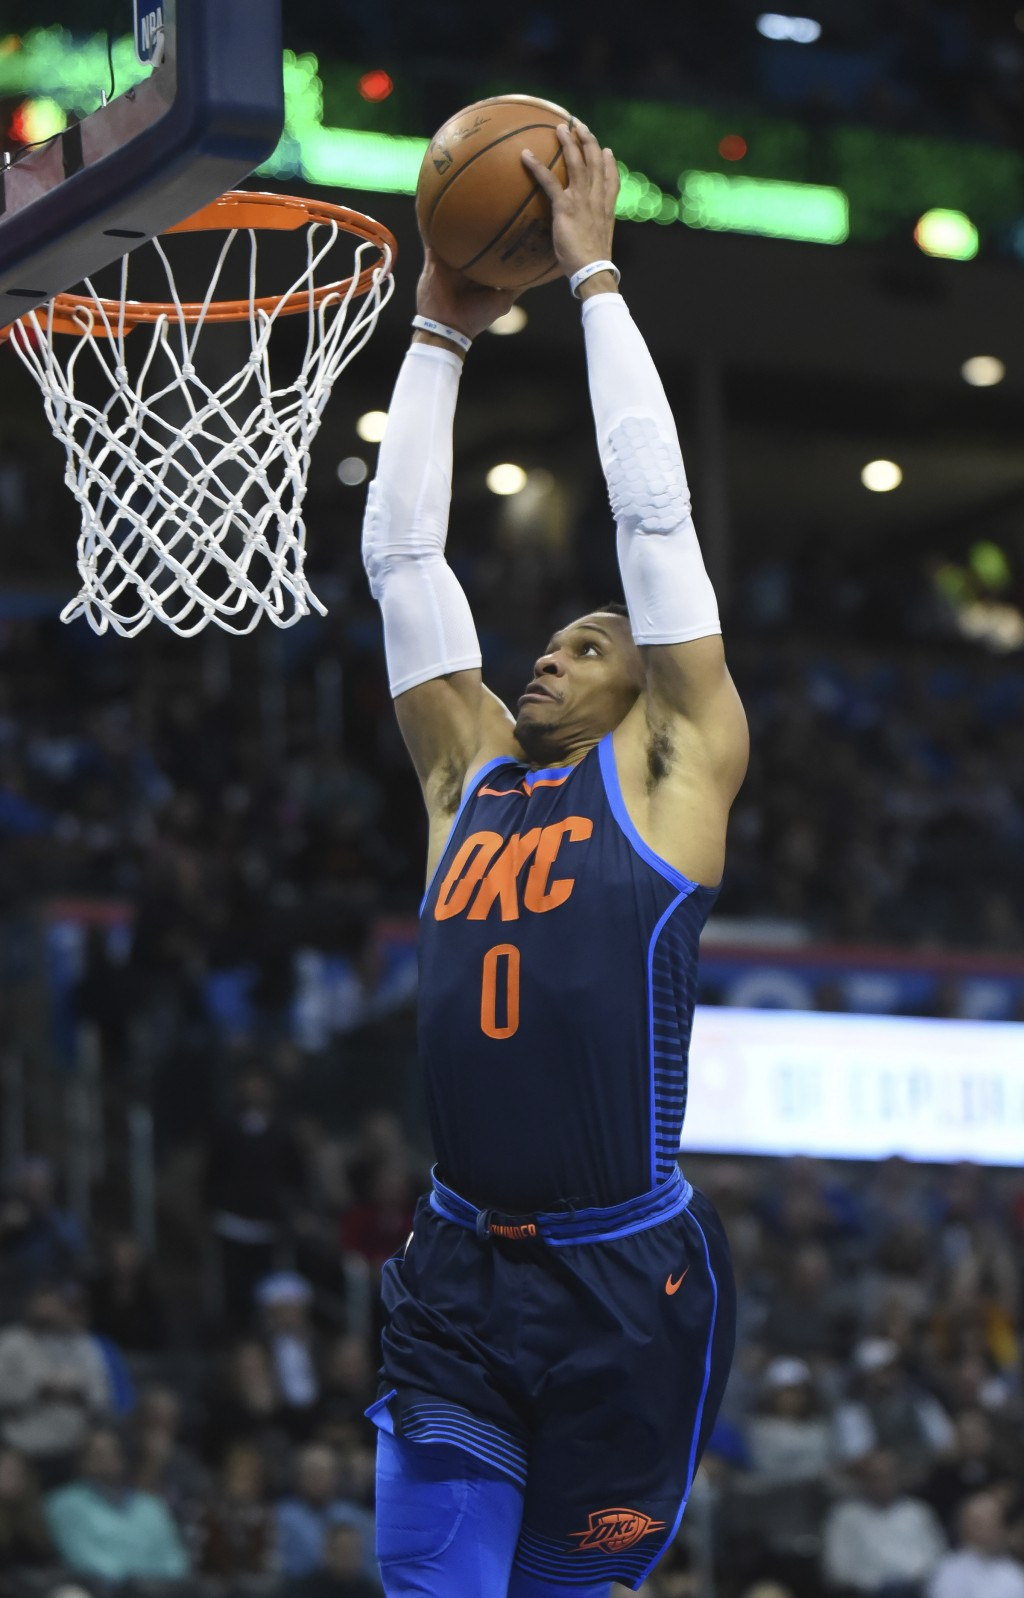 Oklahoma City Thunder's Russell Westbrook dunks the ball in the third quarter of an NBA basketball game in Oklahoma City, Monday, Dec. 25, 2017. Oklah...